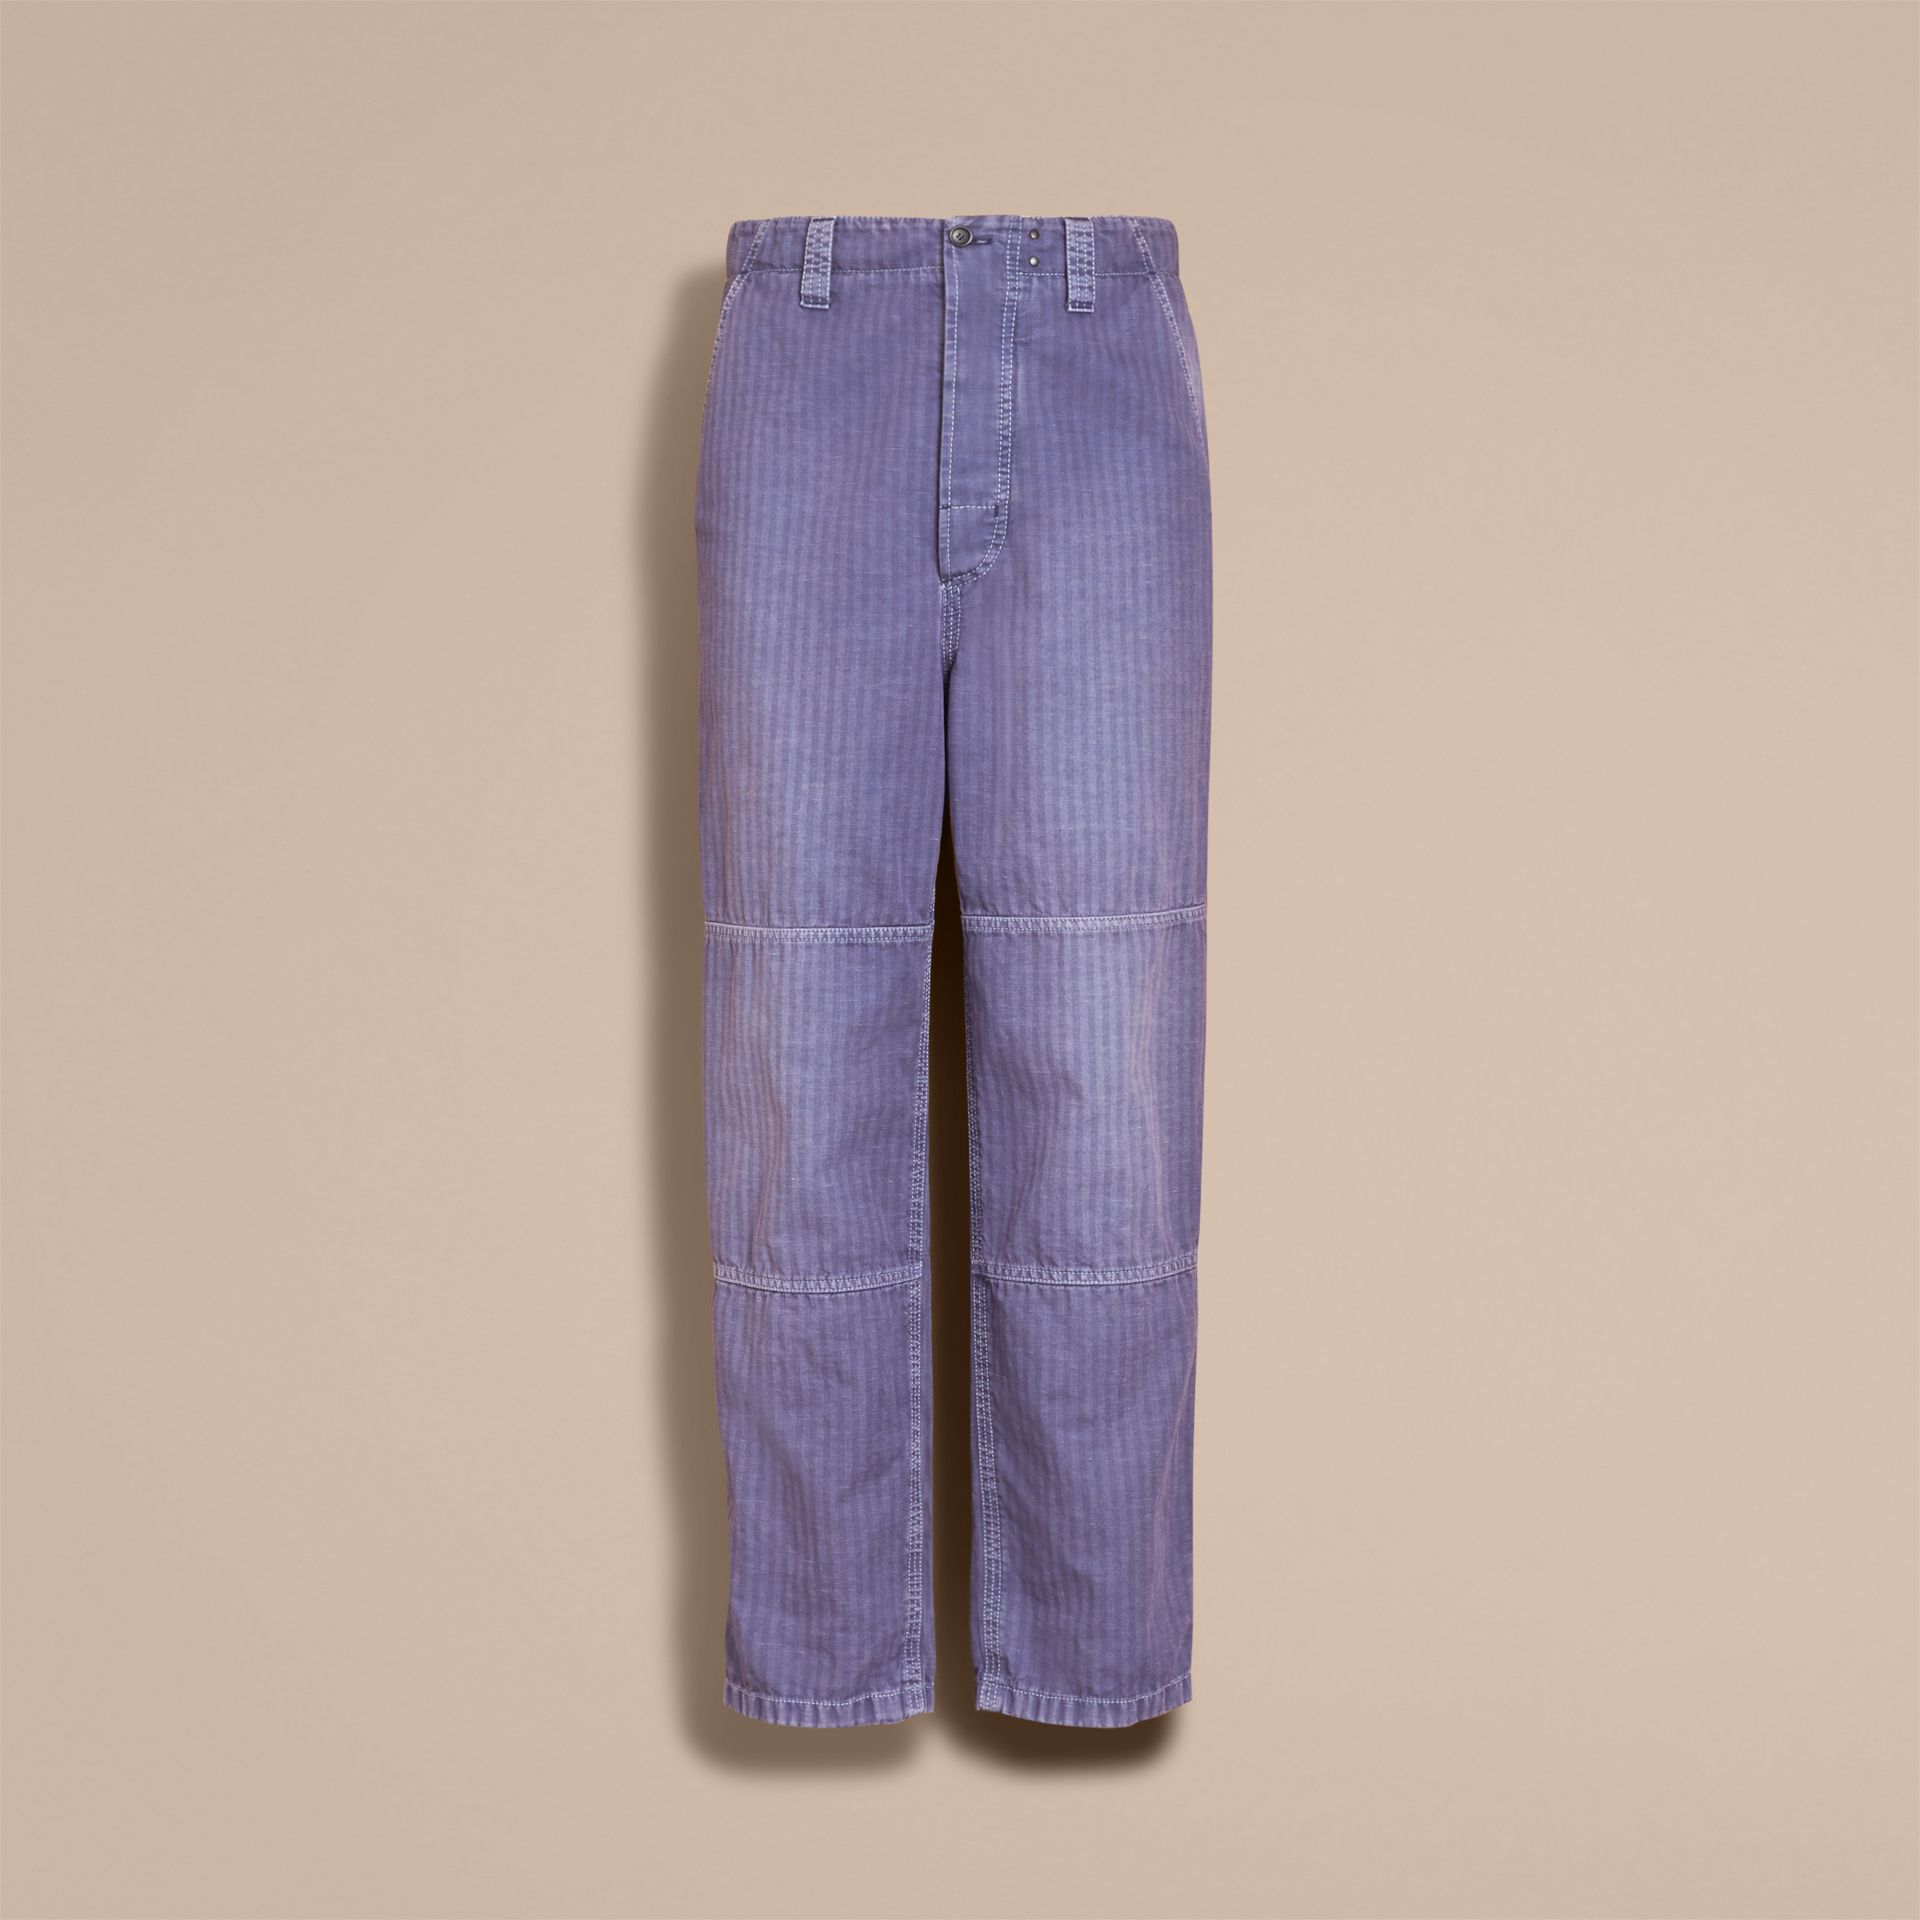 Herringbone Cotton Linen Cropped Workwear Trousers - Men | Burberry Hong Kong - gallery image 4